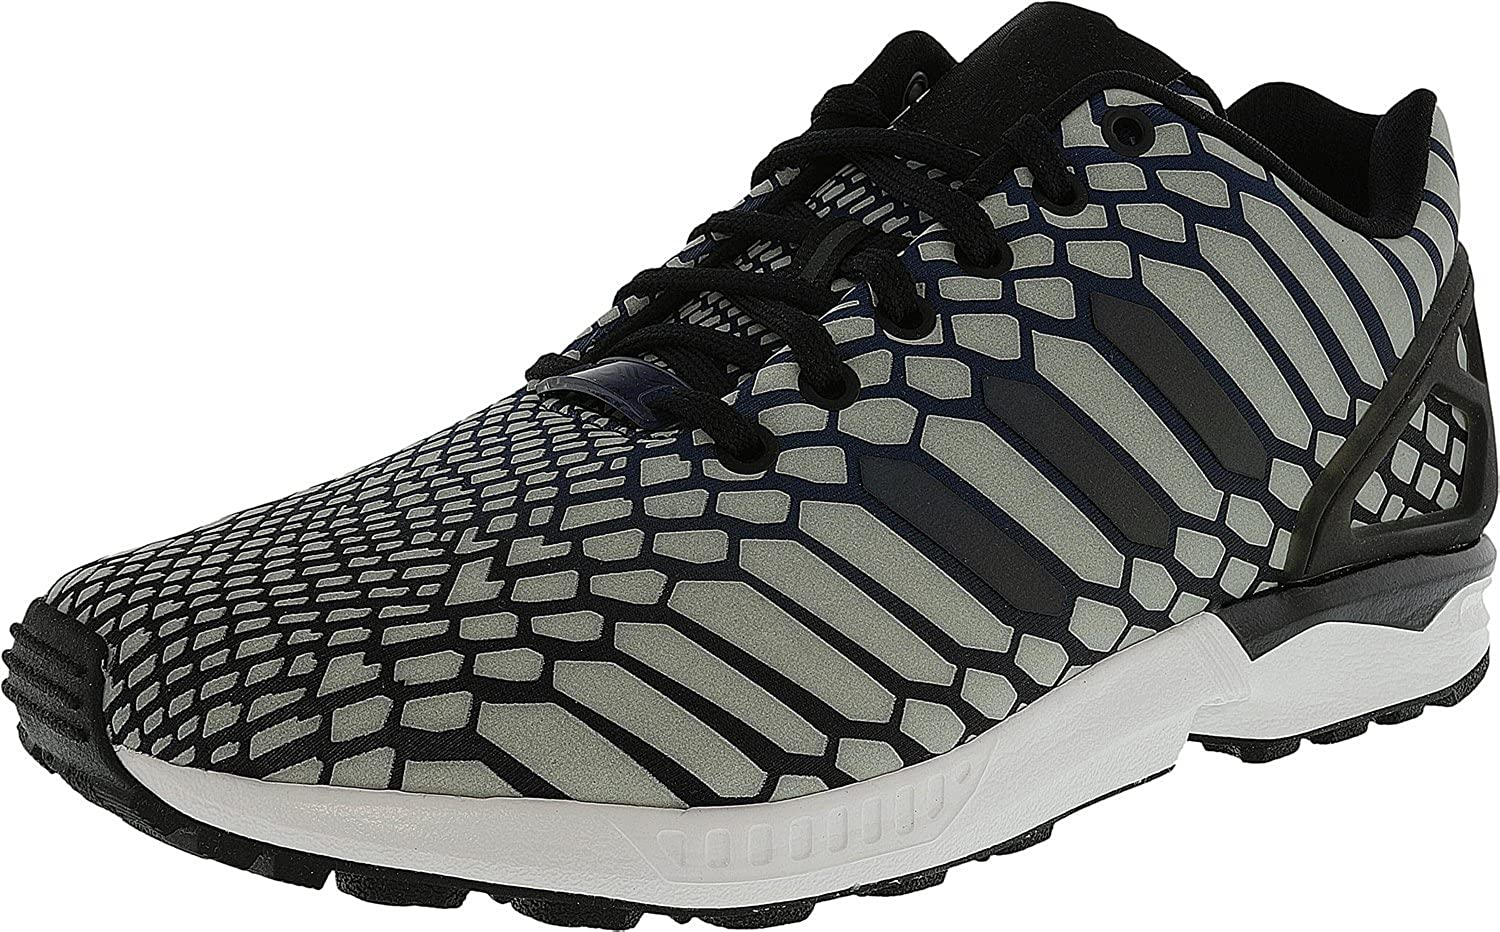 adidas Men's Zx Flux Ankle-High Walking Shoe